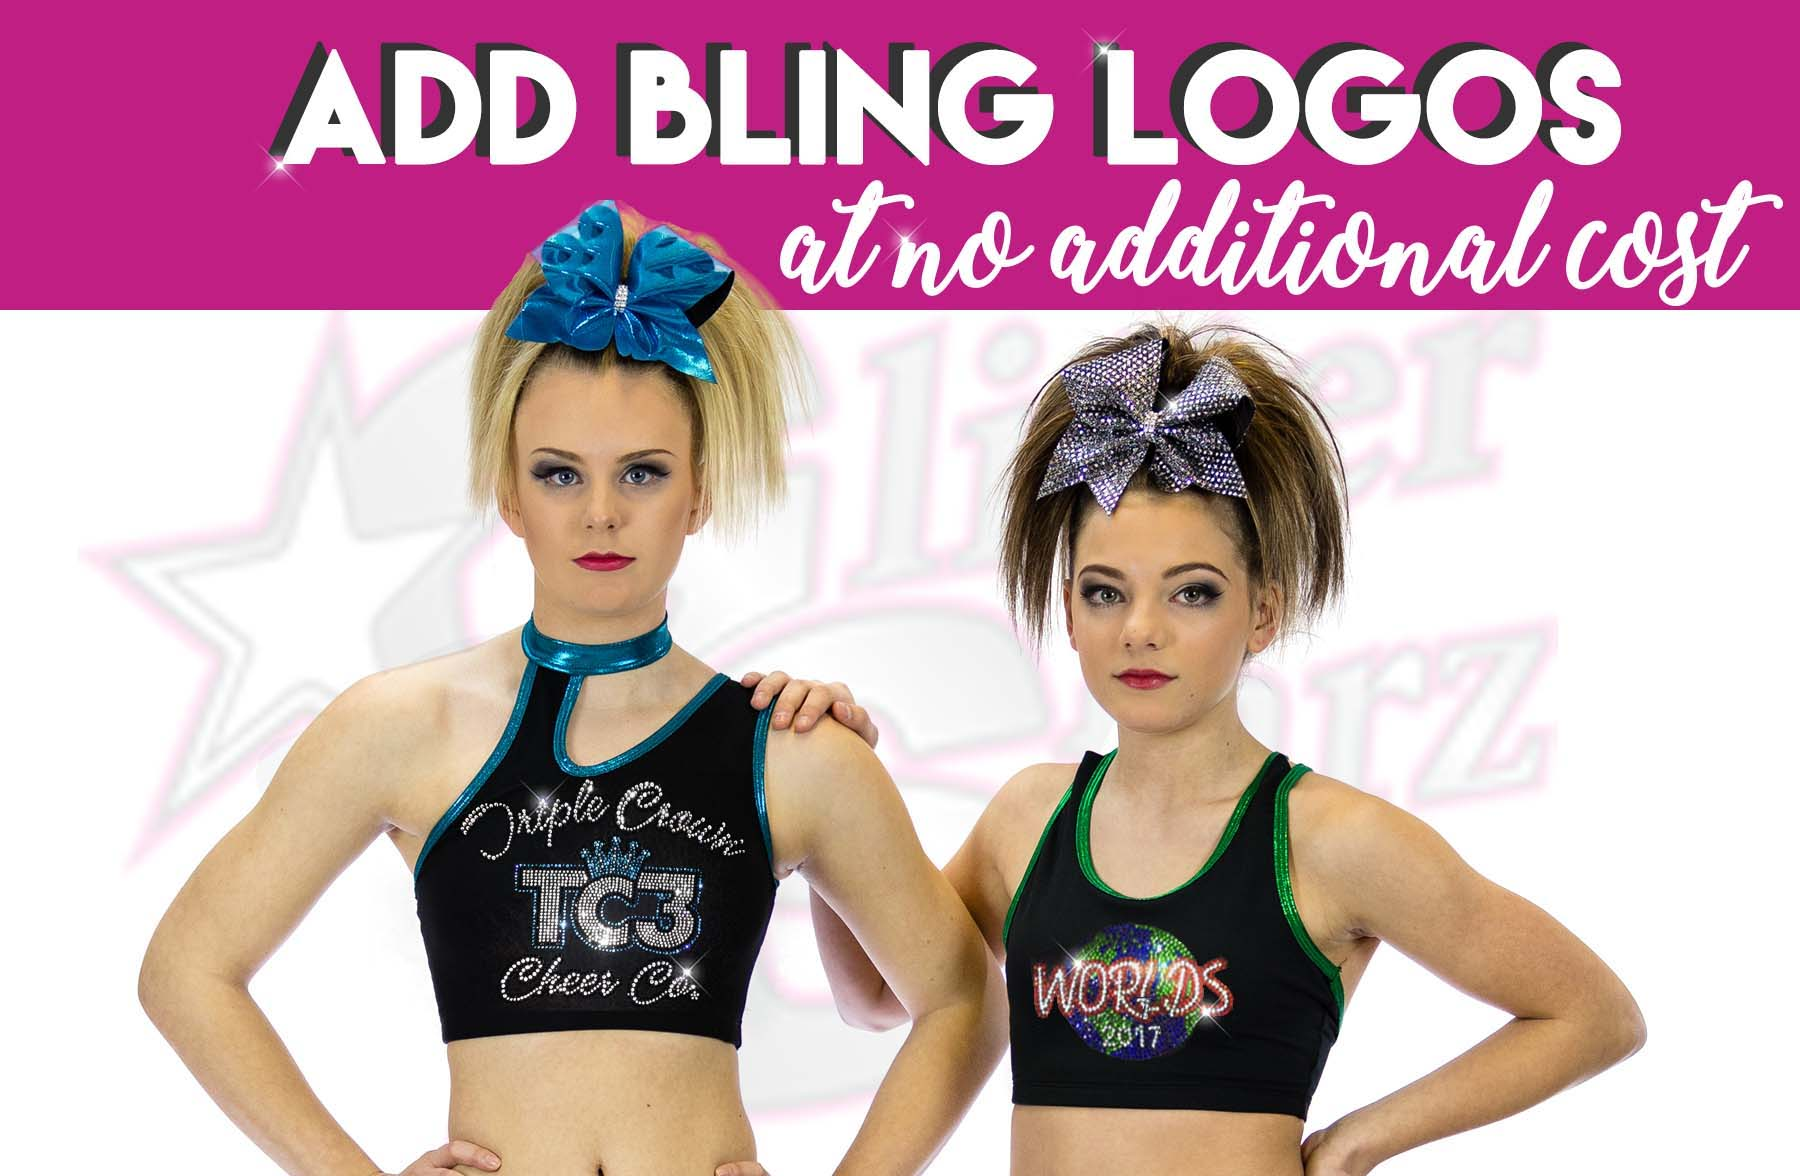 add bling logos at no additional cost to practicewear teamwear